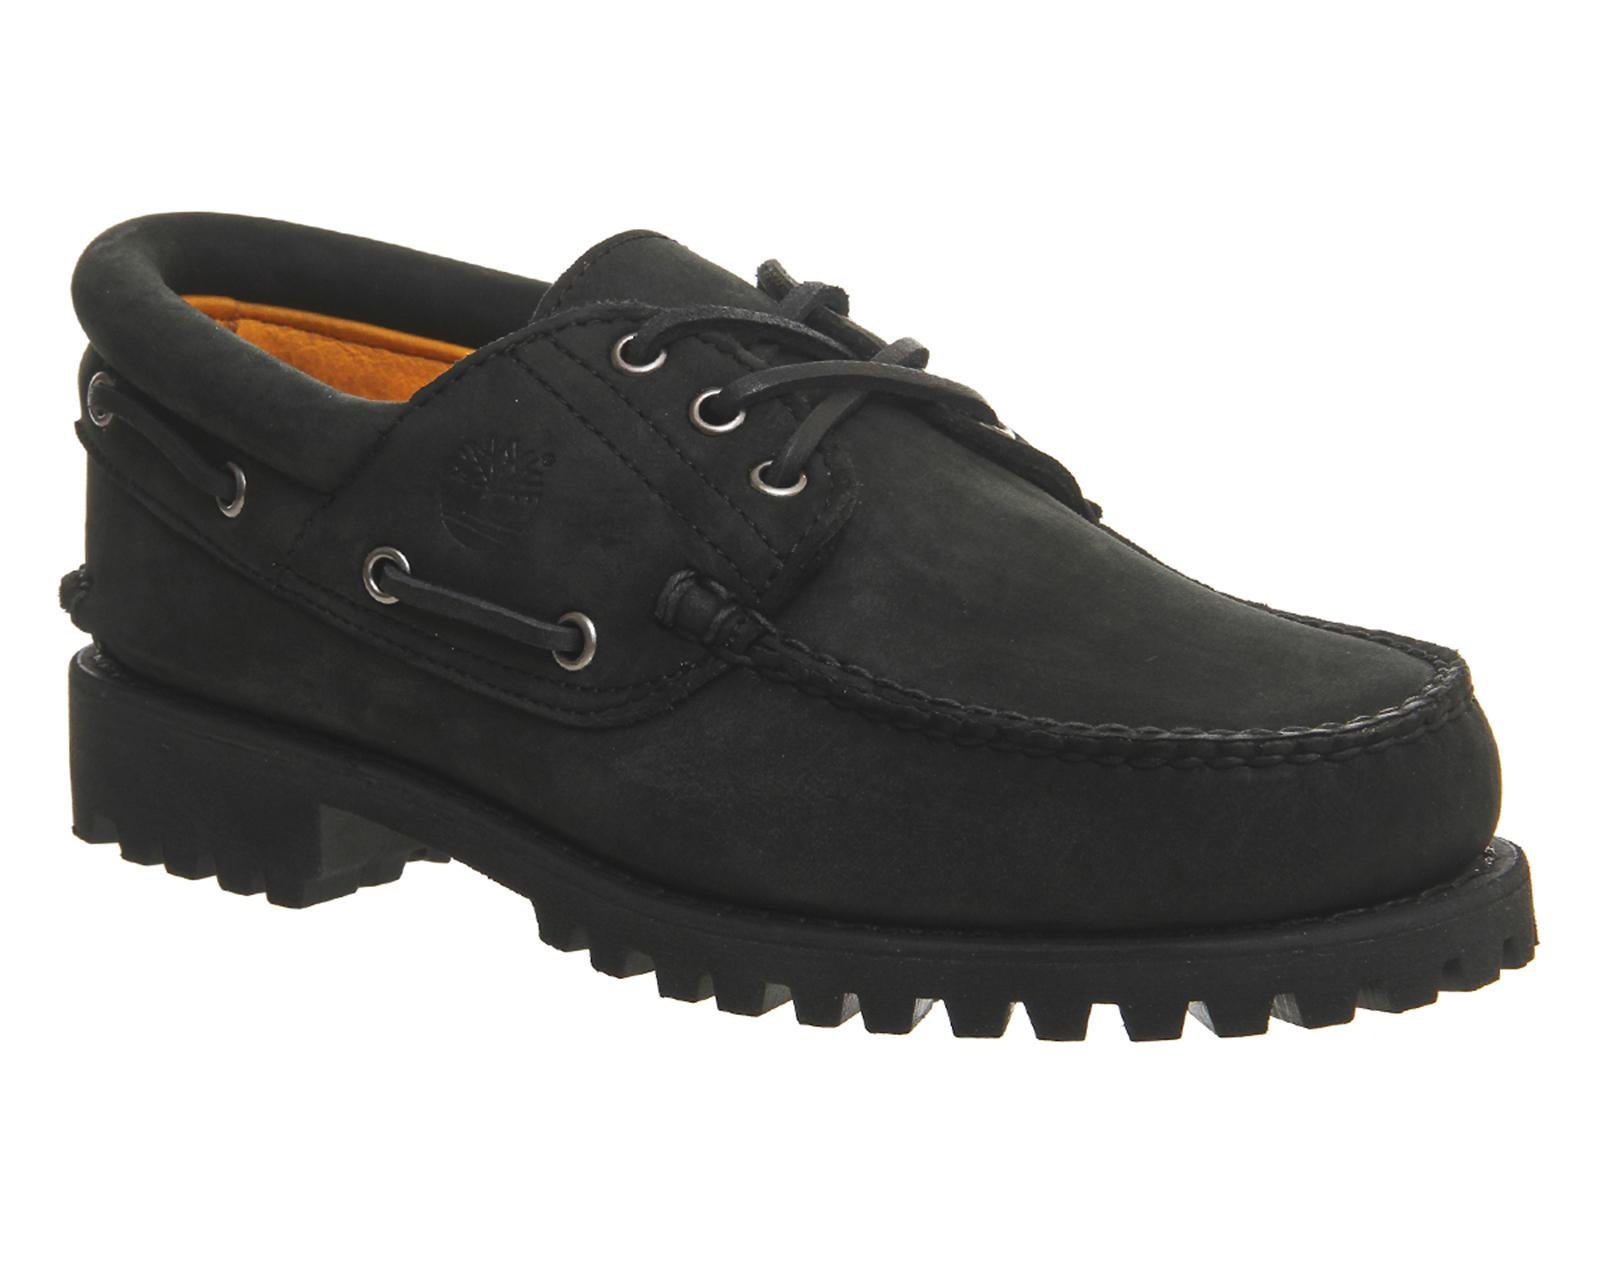 Lyst - Timberland 3 Eye Classic Lug Boat Shoes in Black for Men 1dd6ac935e5